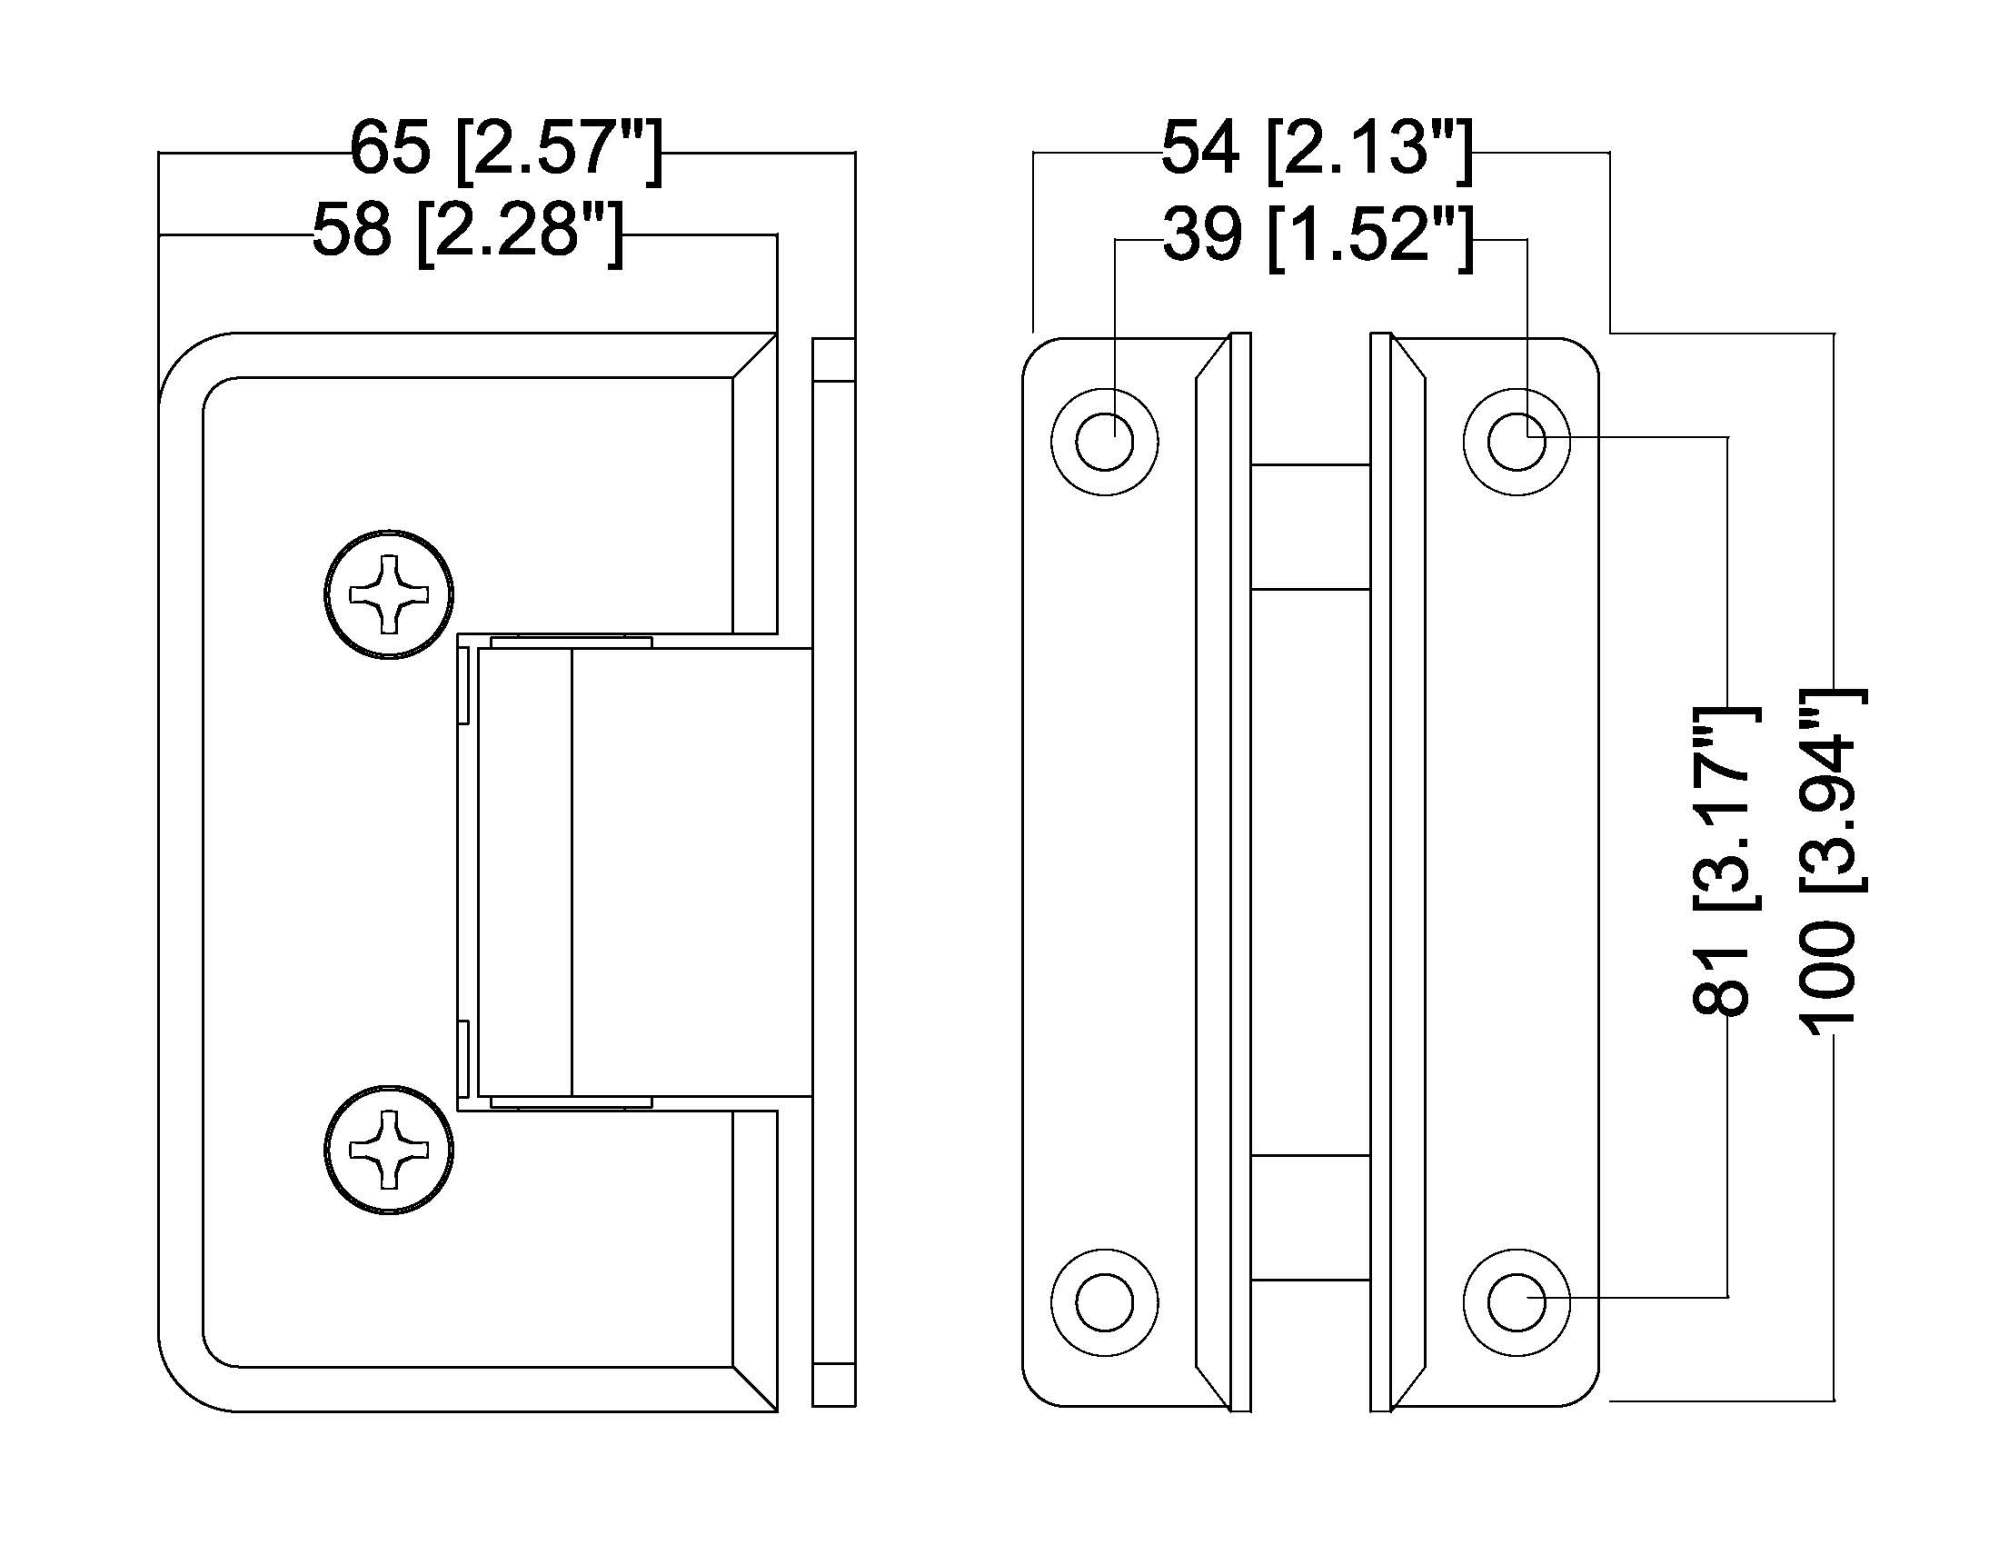 hight resolution of hshdb037lbsn rockwell heavy duty bevelled corner shower hinge h type full back plate in brushed nickel finish for heavy tempered glass shower doors